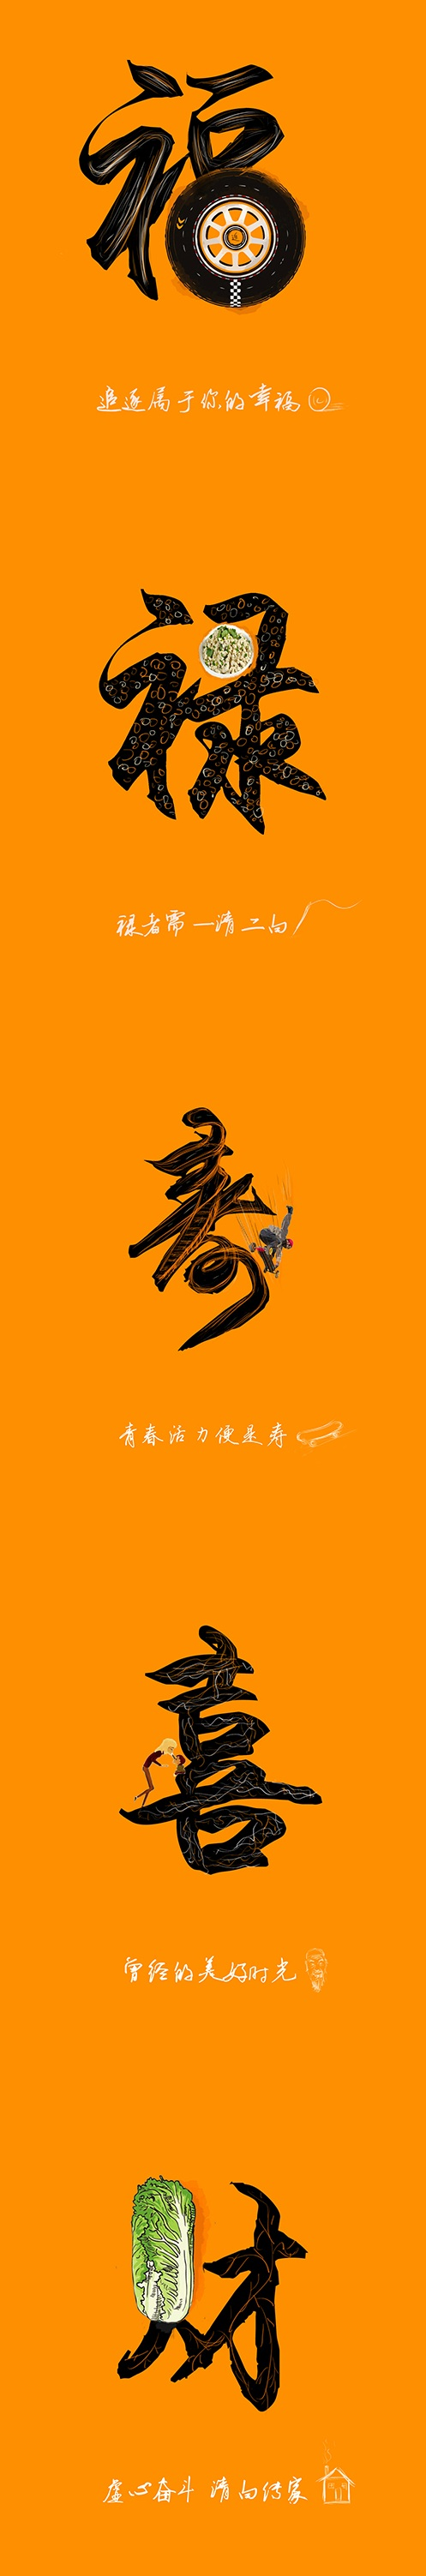 chinesefontdesign.com 2016 09 10 21 05 55 250+ Cool Chinese Font Style Designs That Will Truly Inspire You #.18